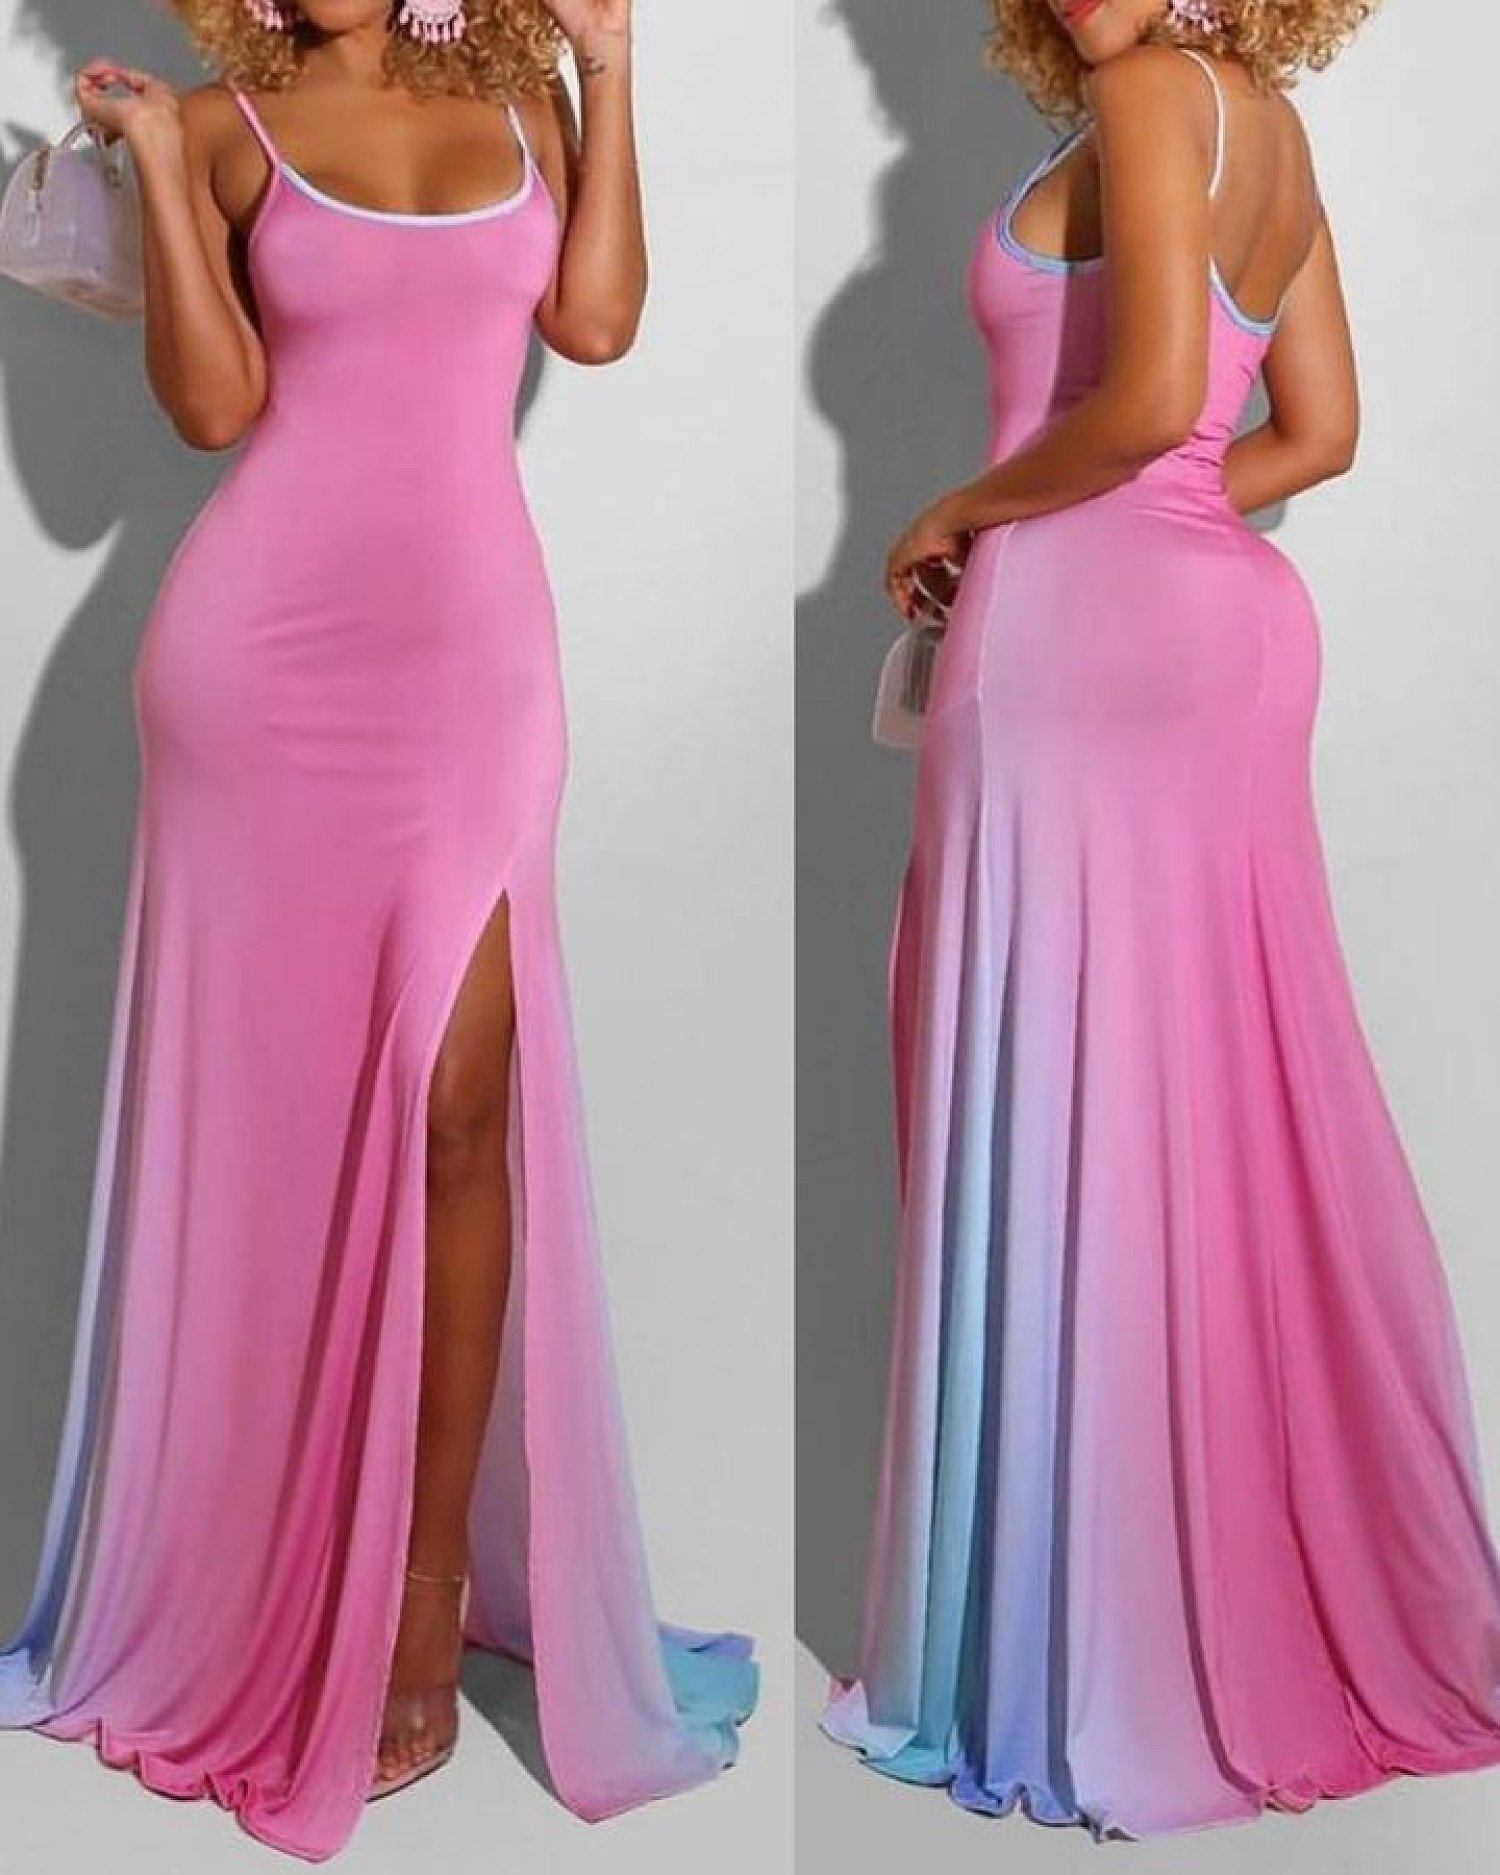 Ombre High Slit Maxi Dress Free Postage